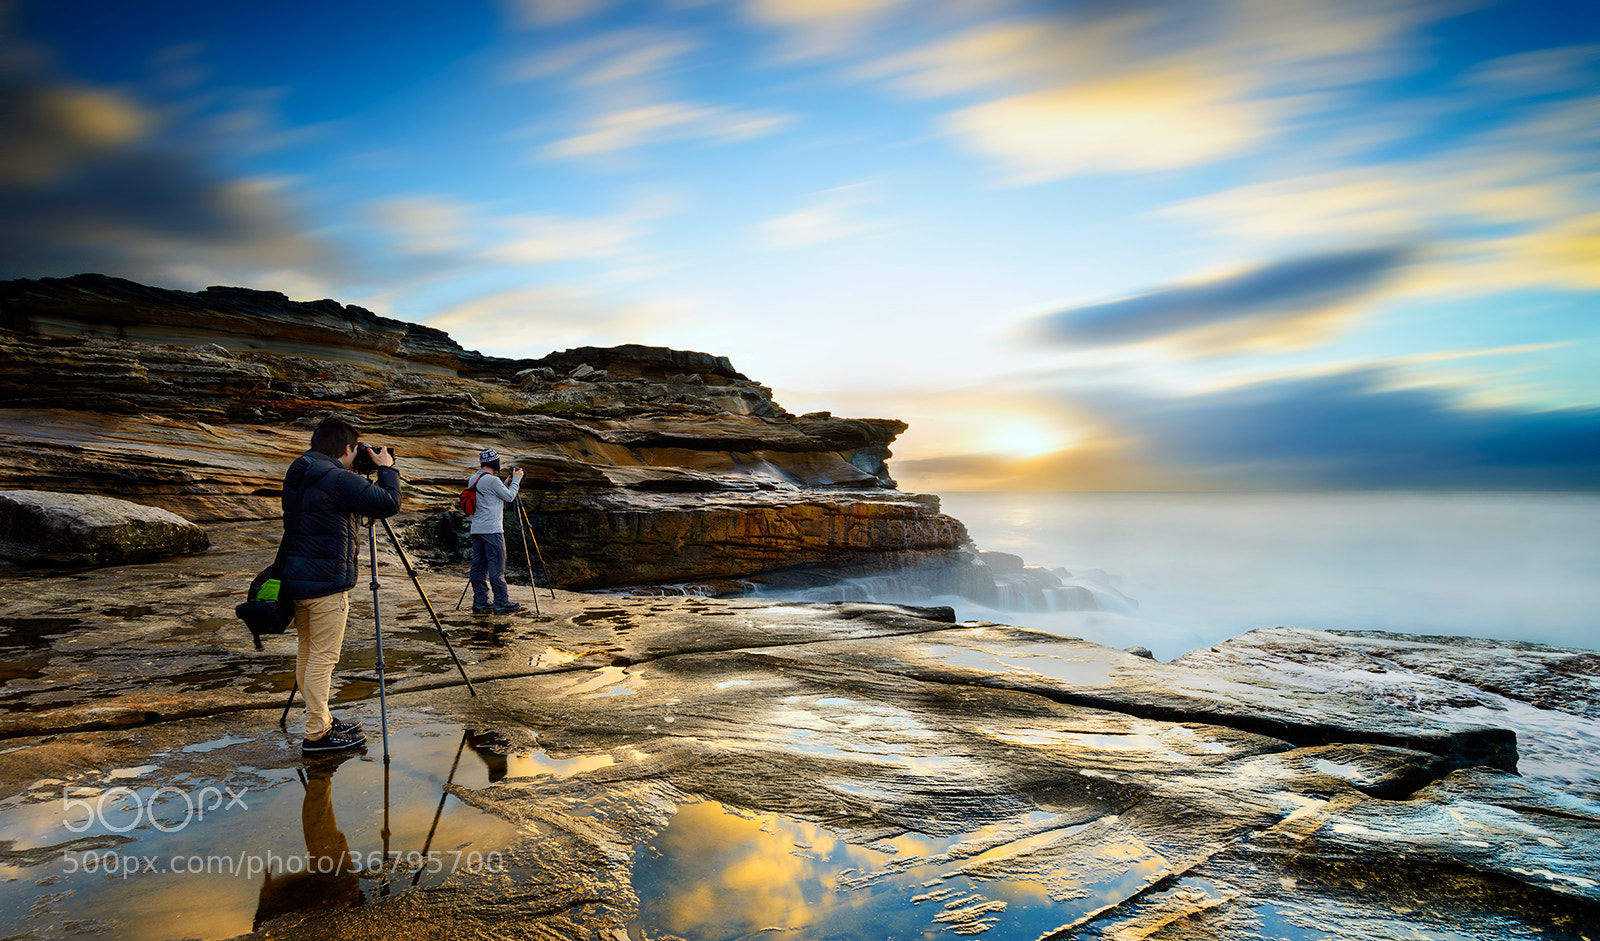 Photograph The back up by Goff Kitsawad on 500px